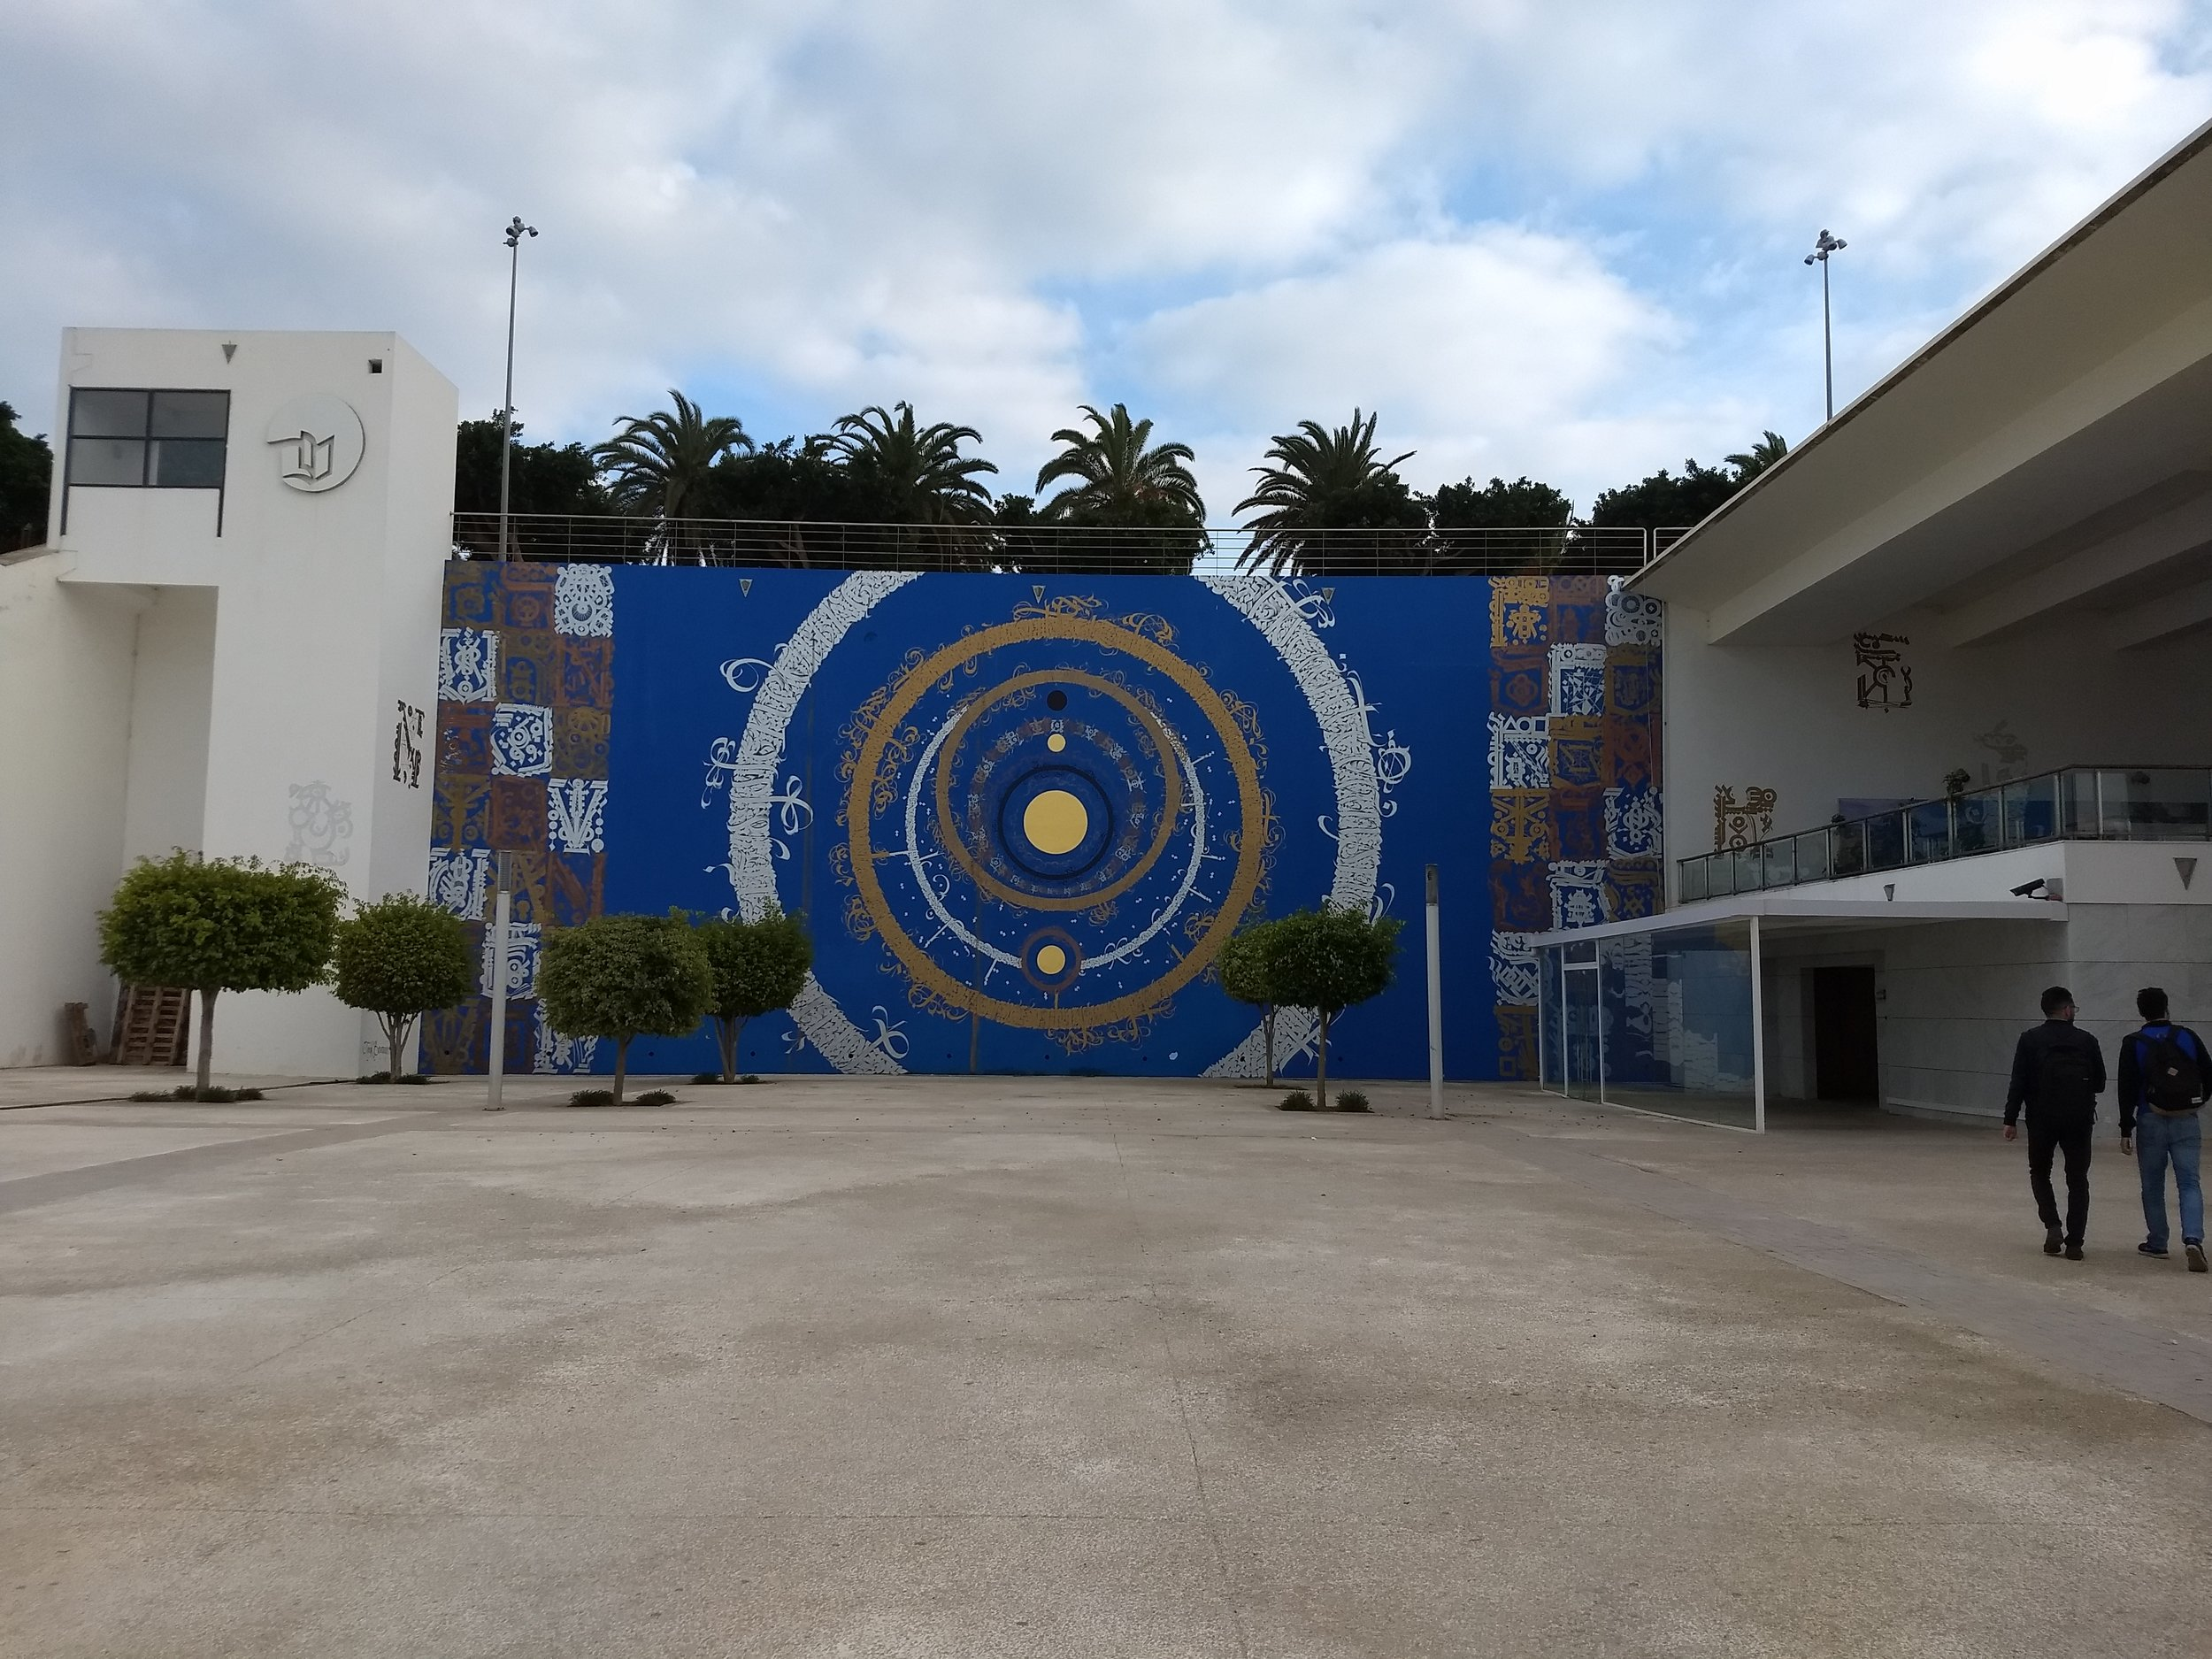 The library is set back from the road, on the other side of a large courtyard filled with sculptures and murals. Photo Credit: Liora Silkes, 2018.